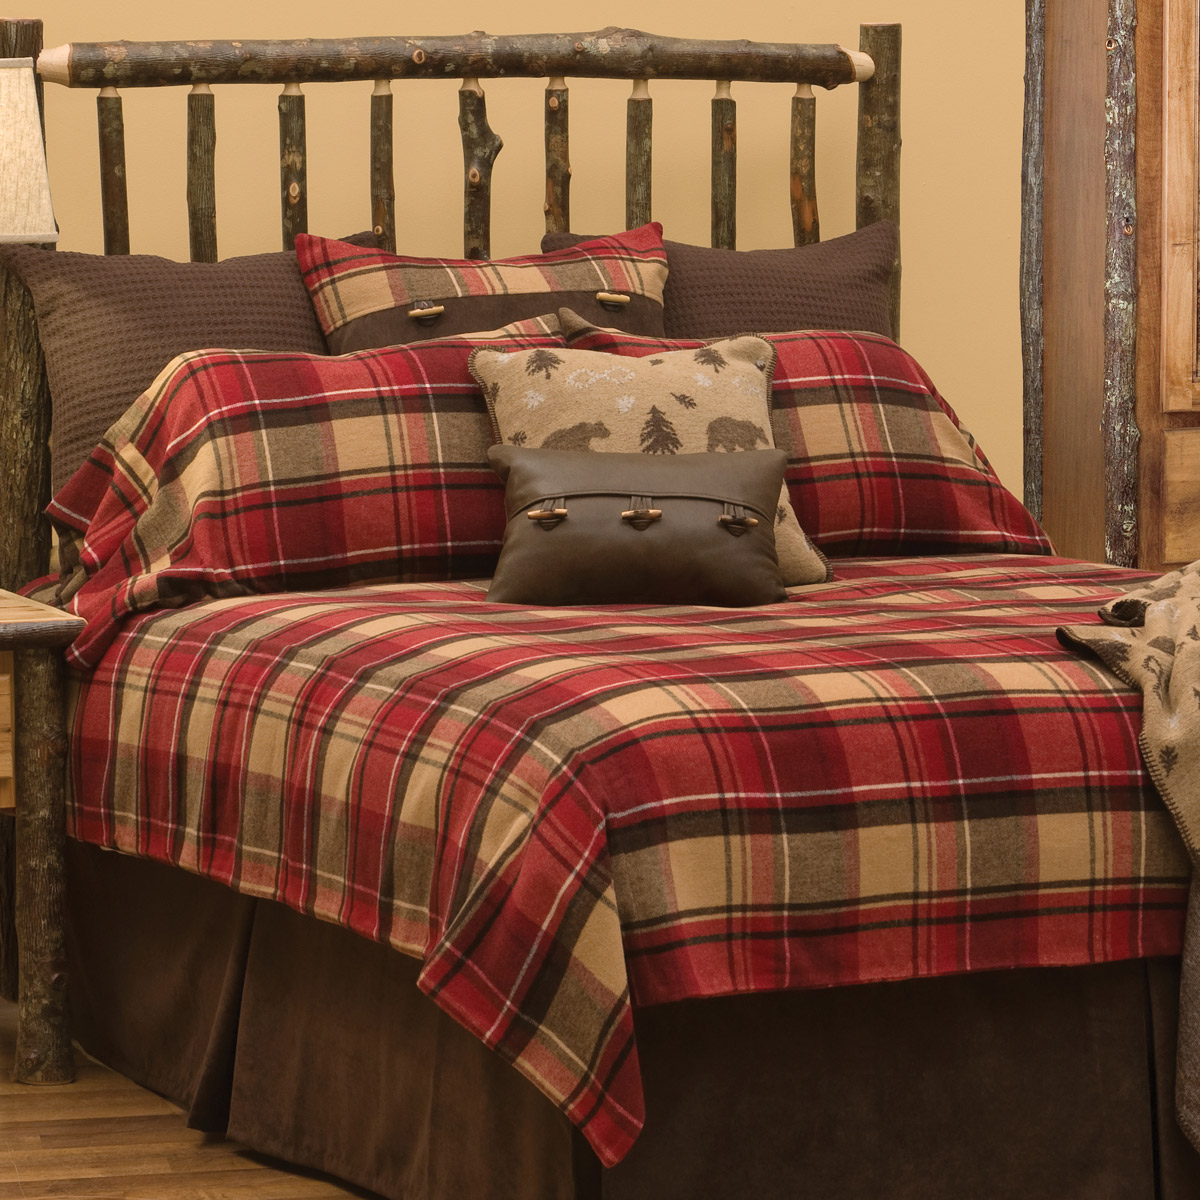 Gunnison Bedspread - Full/Queen